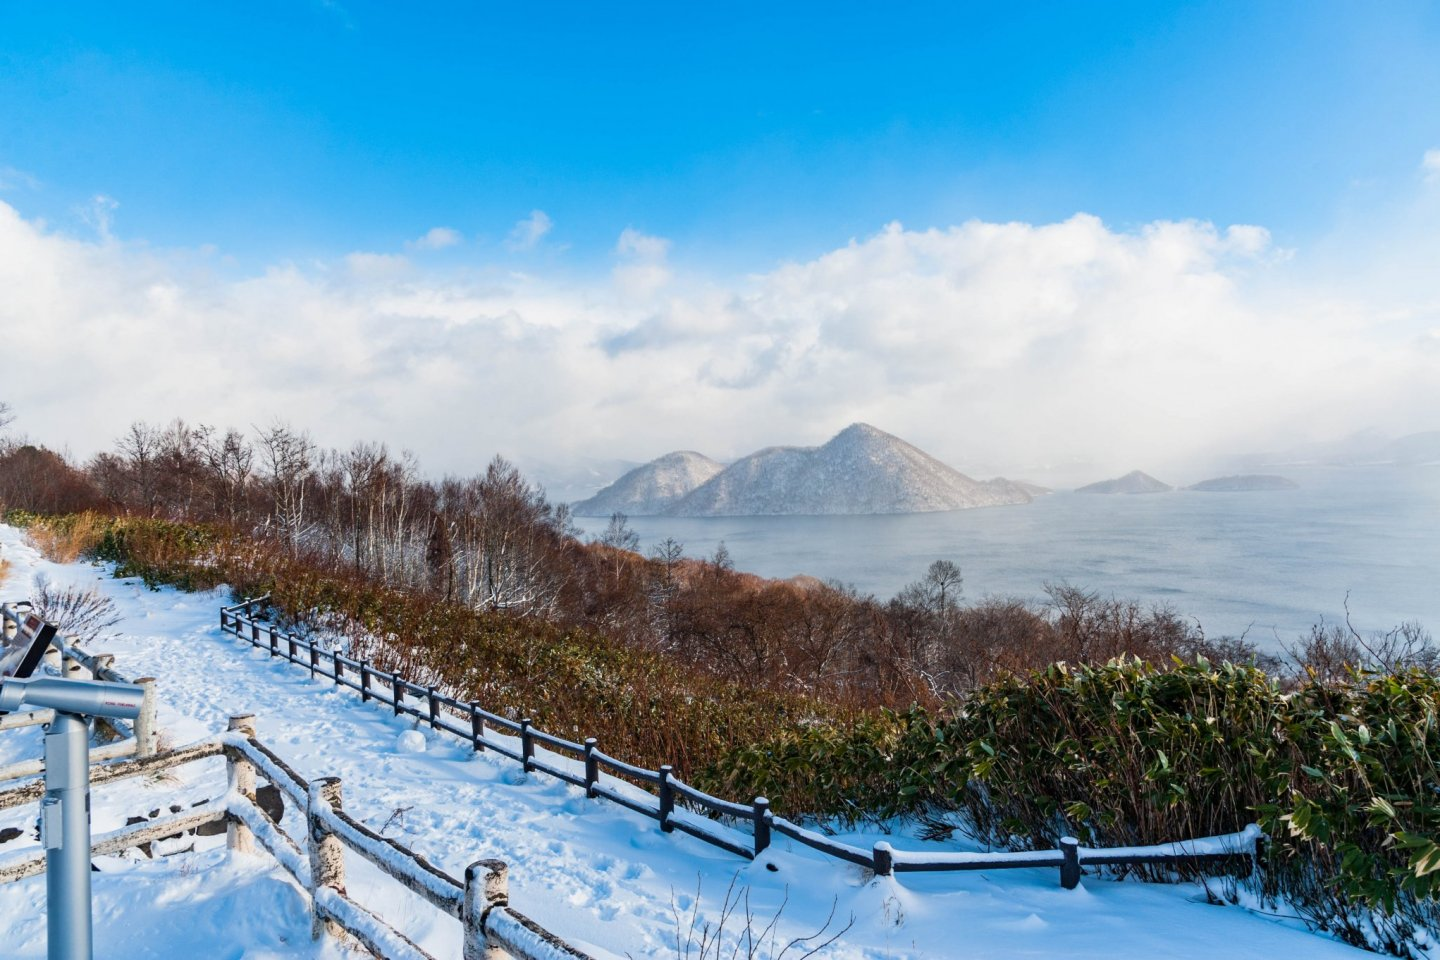 Lake Toya in winter